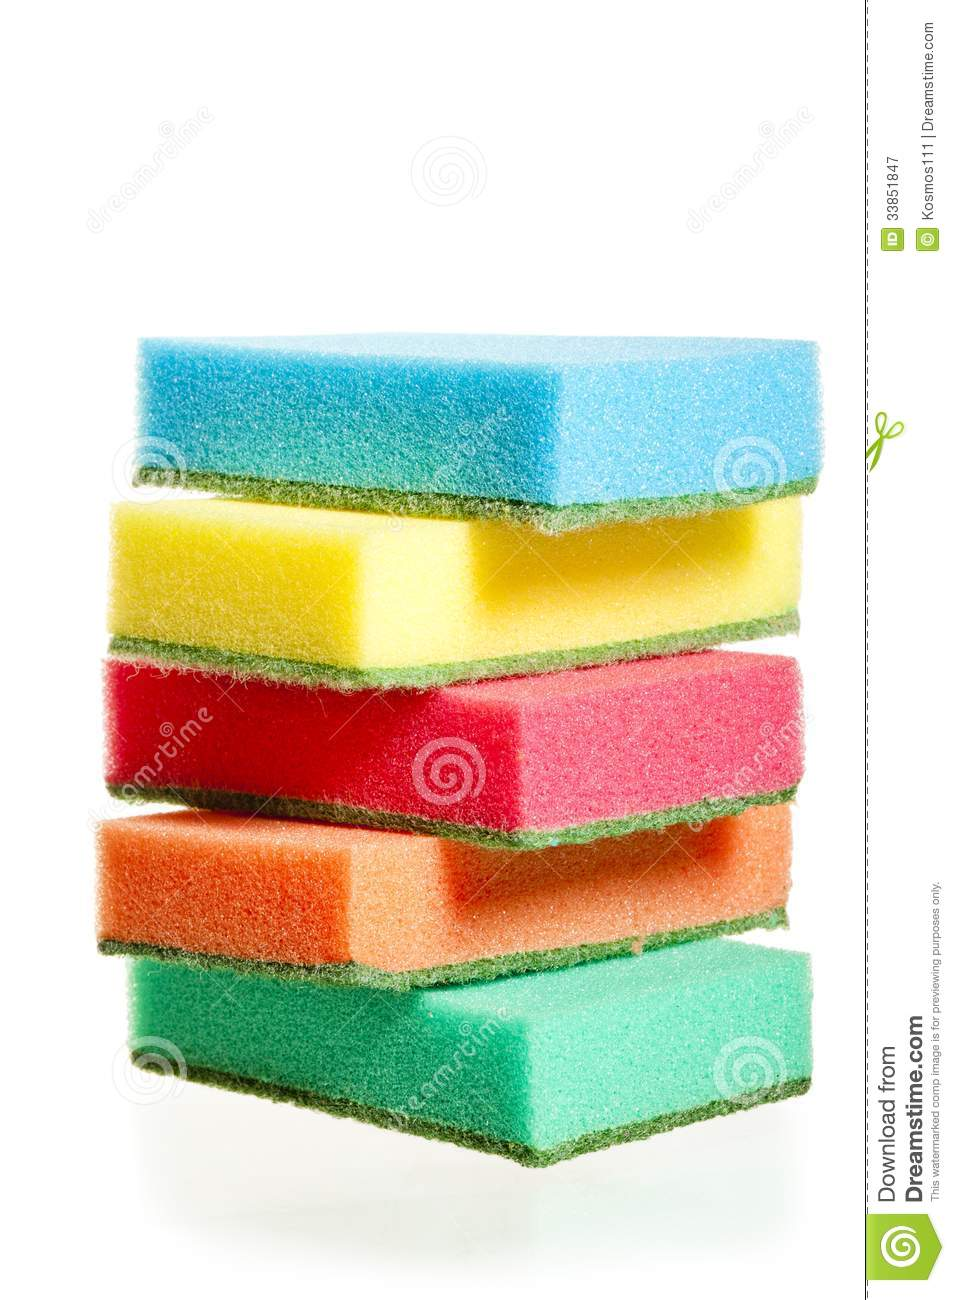 A Pile Of Sponges For Washing Dishes Of Different Colors